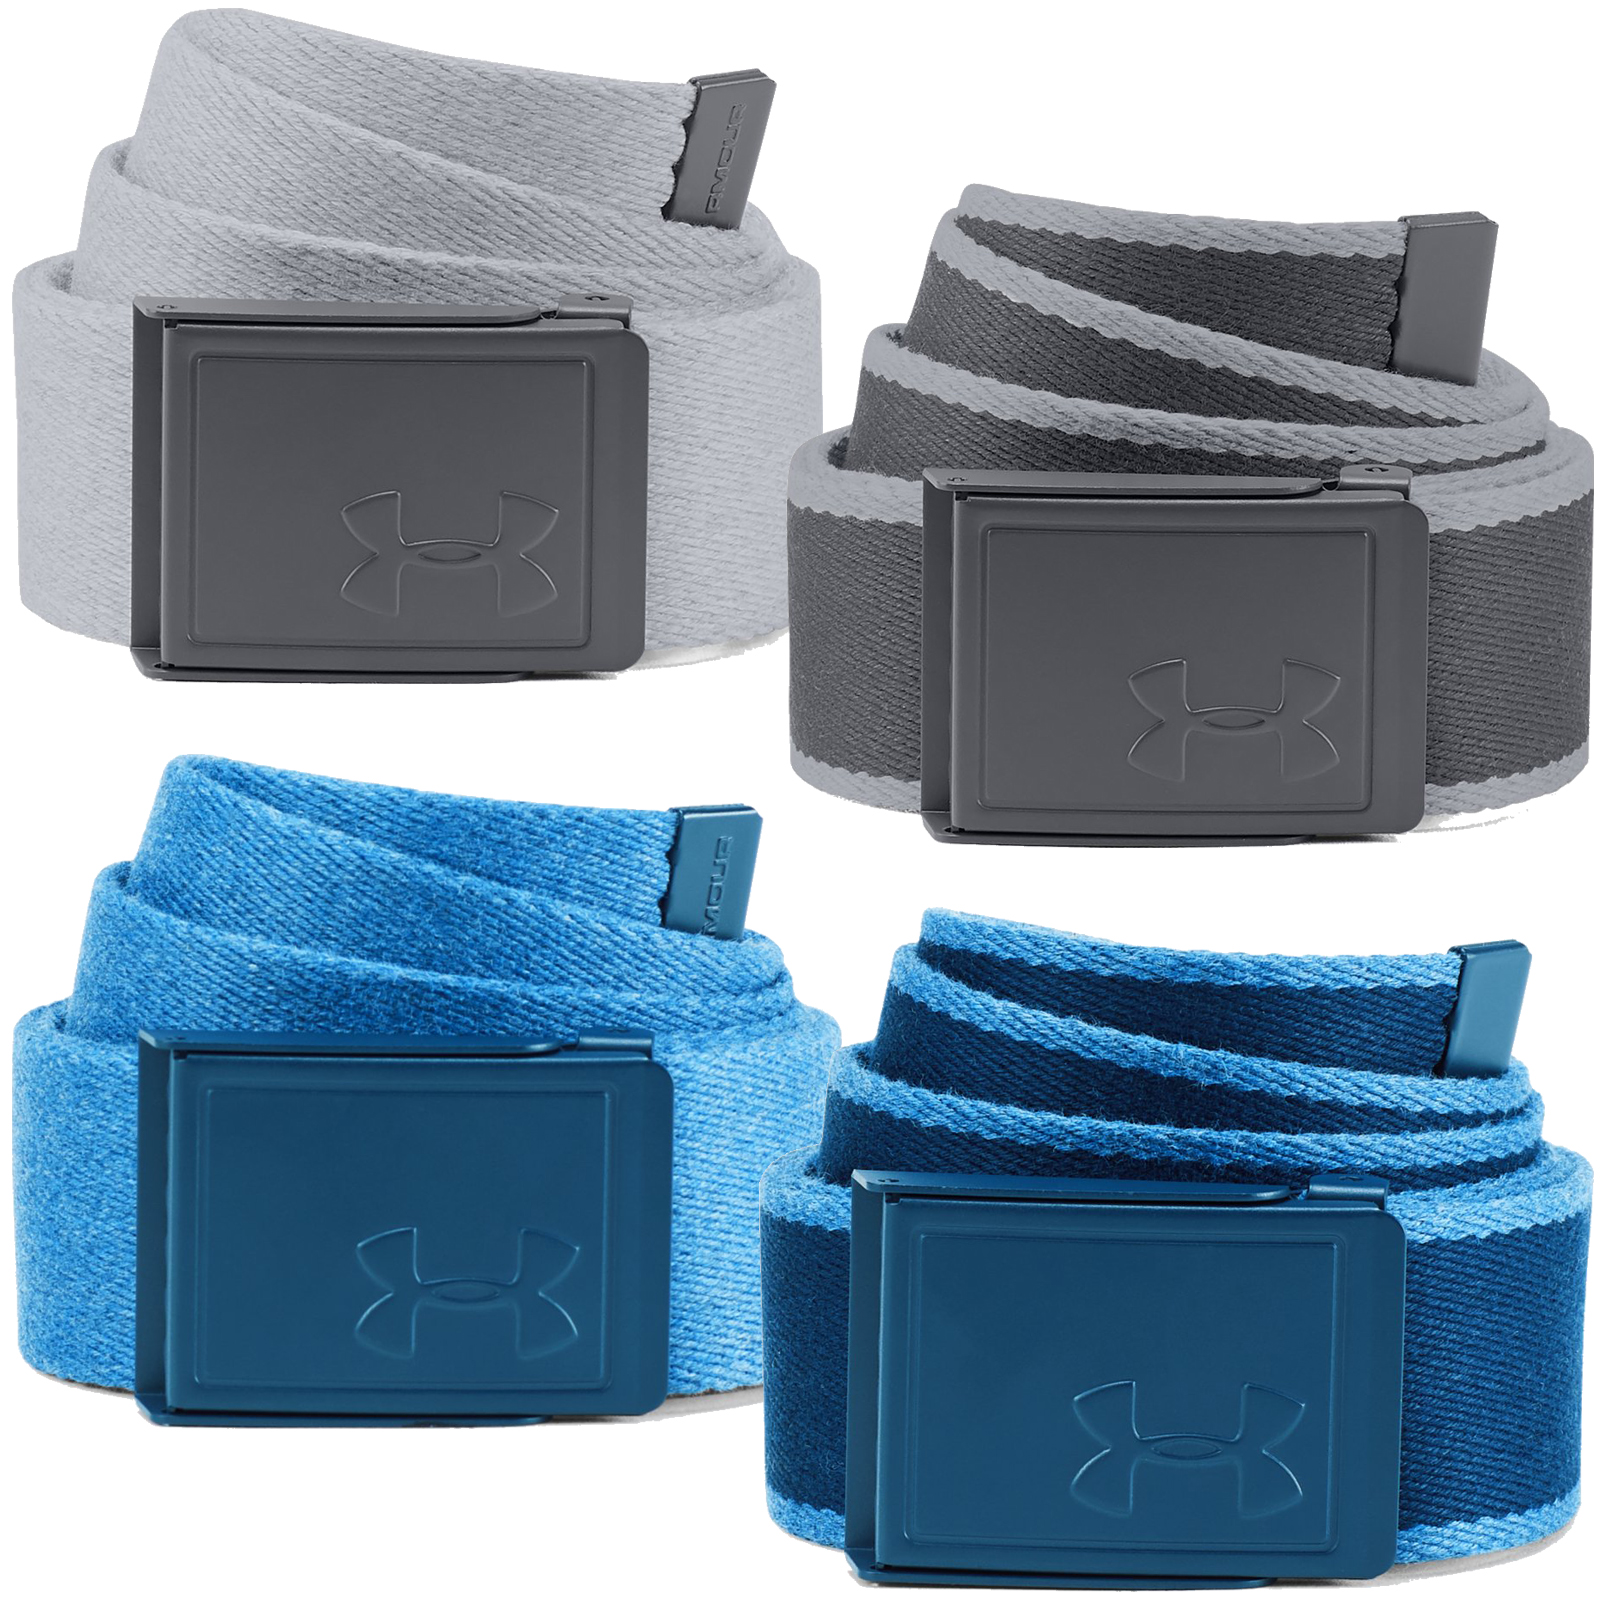 8504ba33 Details about Under Armour Men's Reversible Novelty Patterned Webbing Golf  Belt